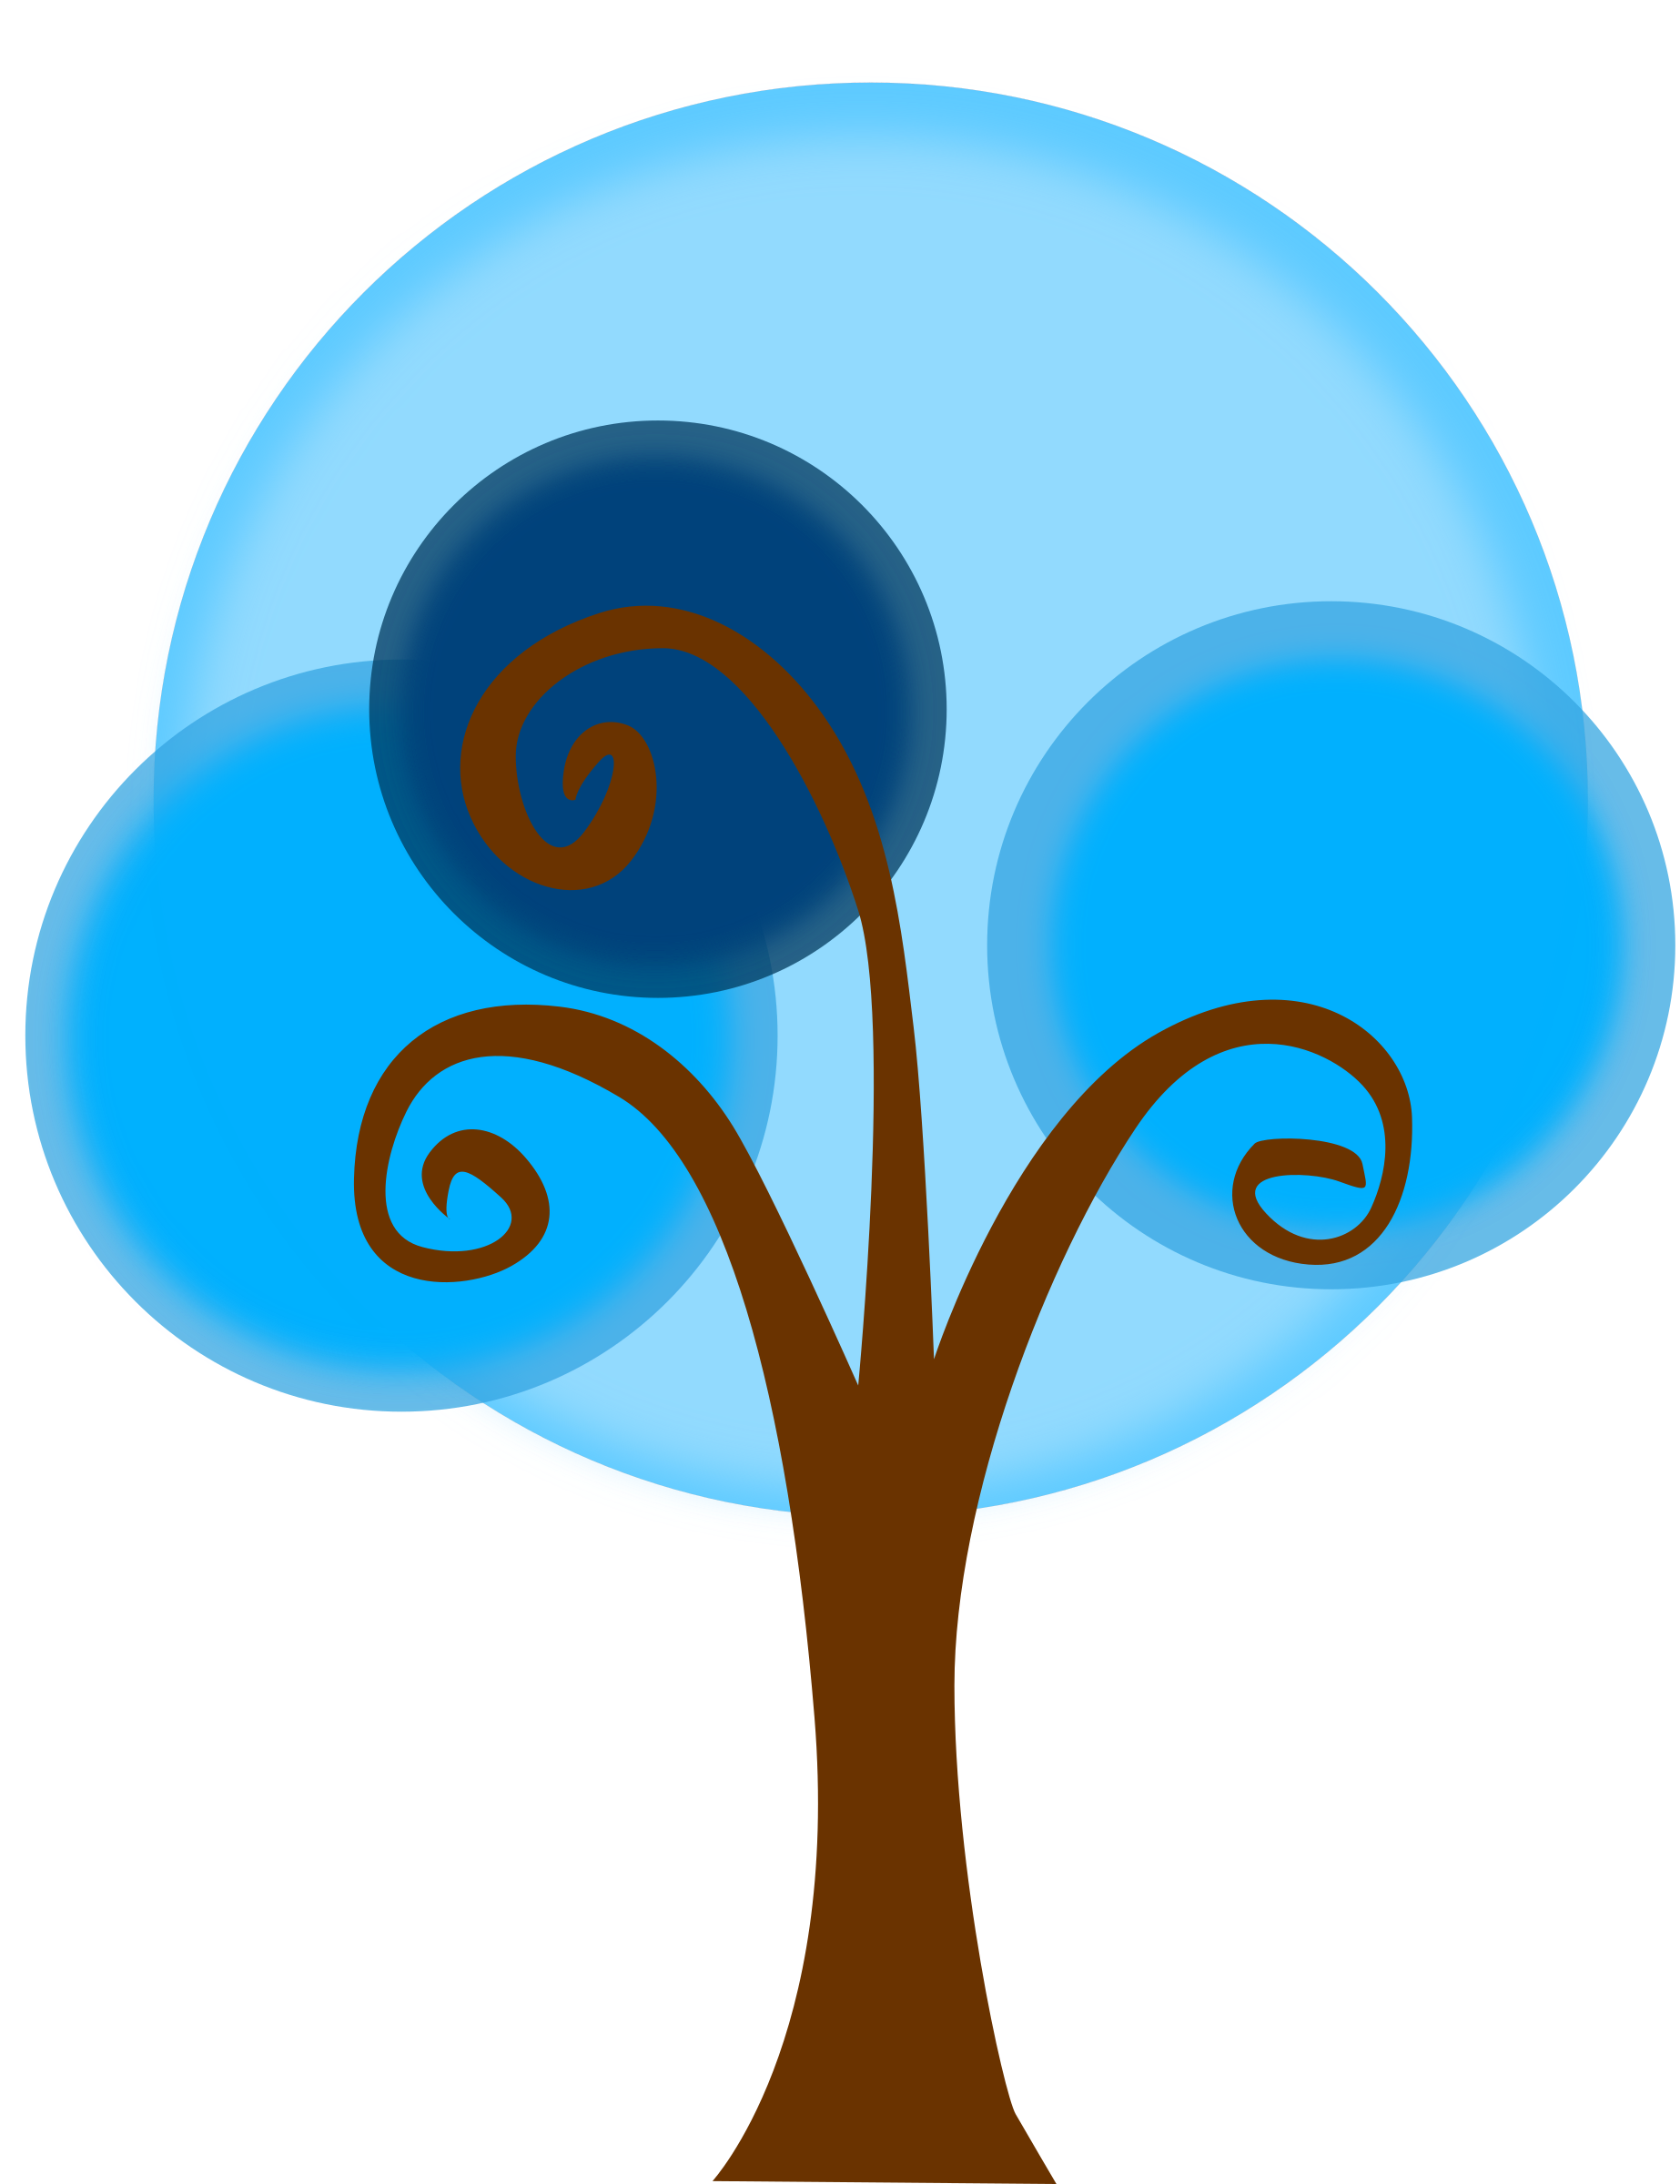 Blue tree clipart picture library download Clipart - Blue Tree picture library download